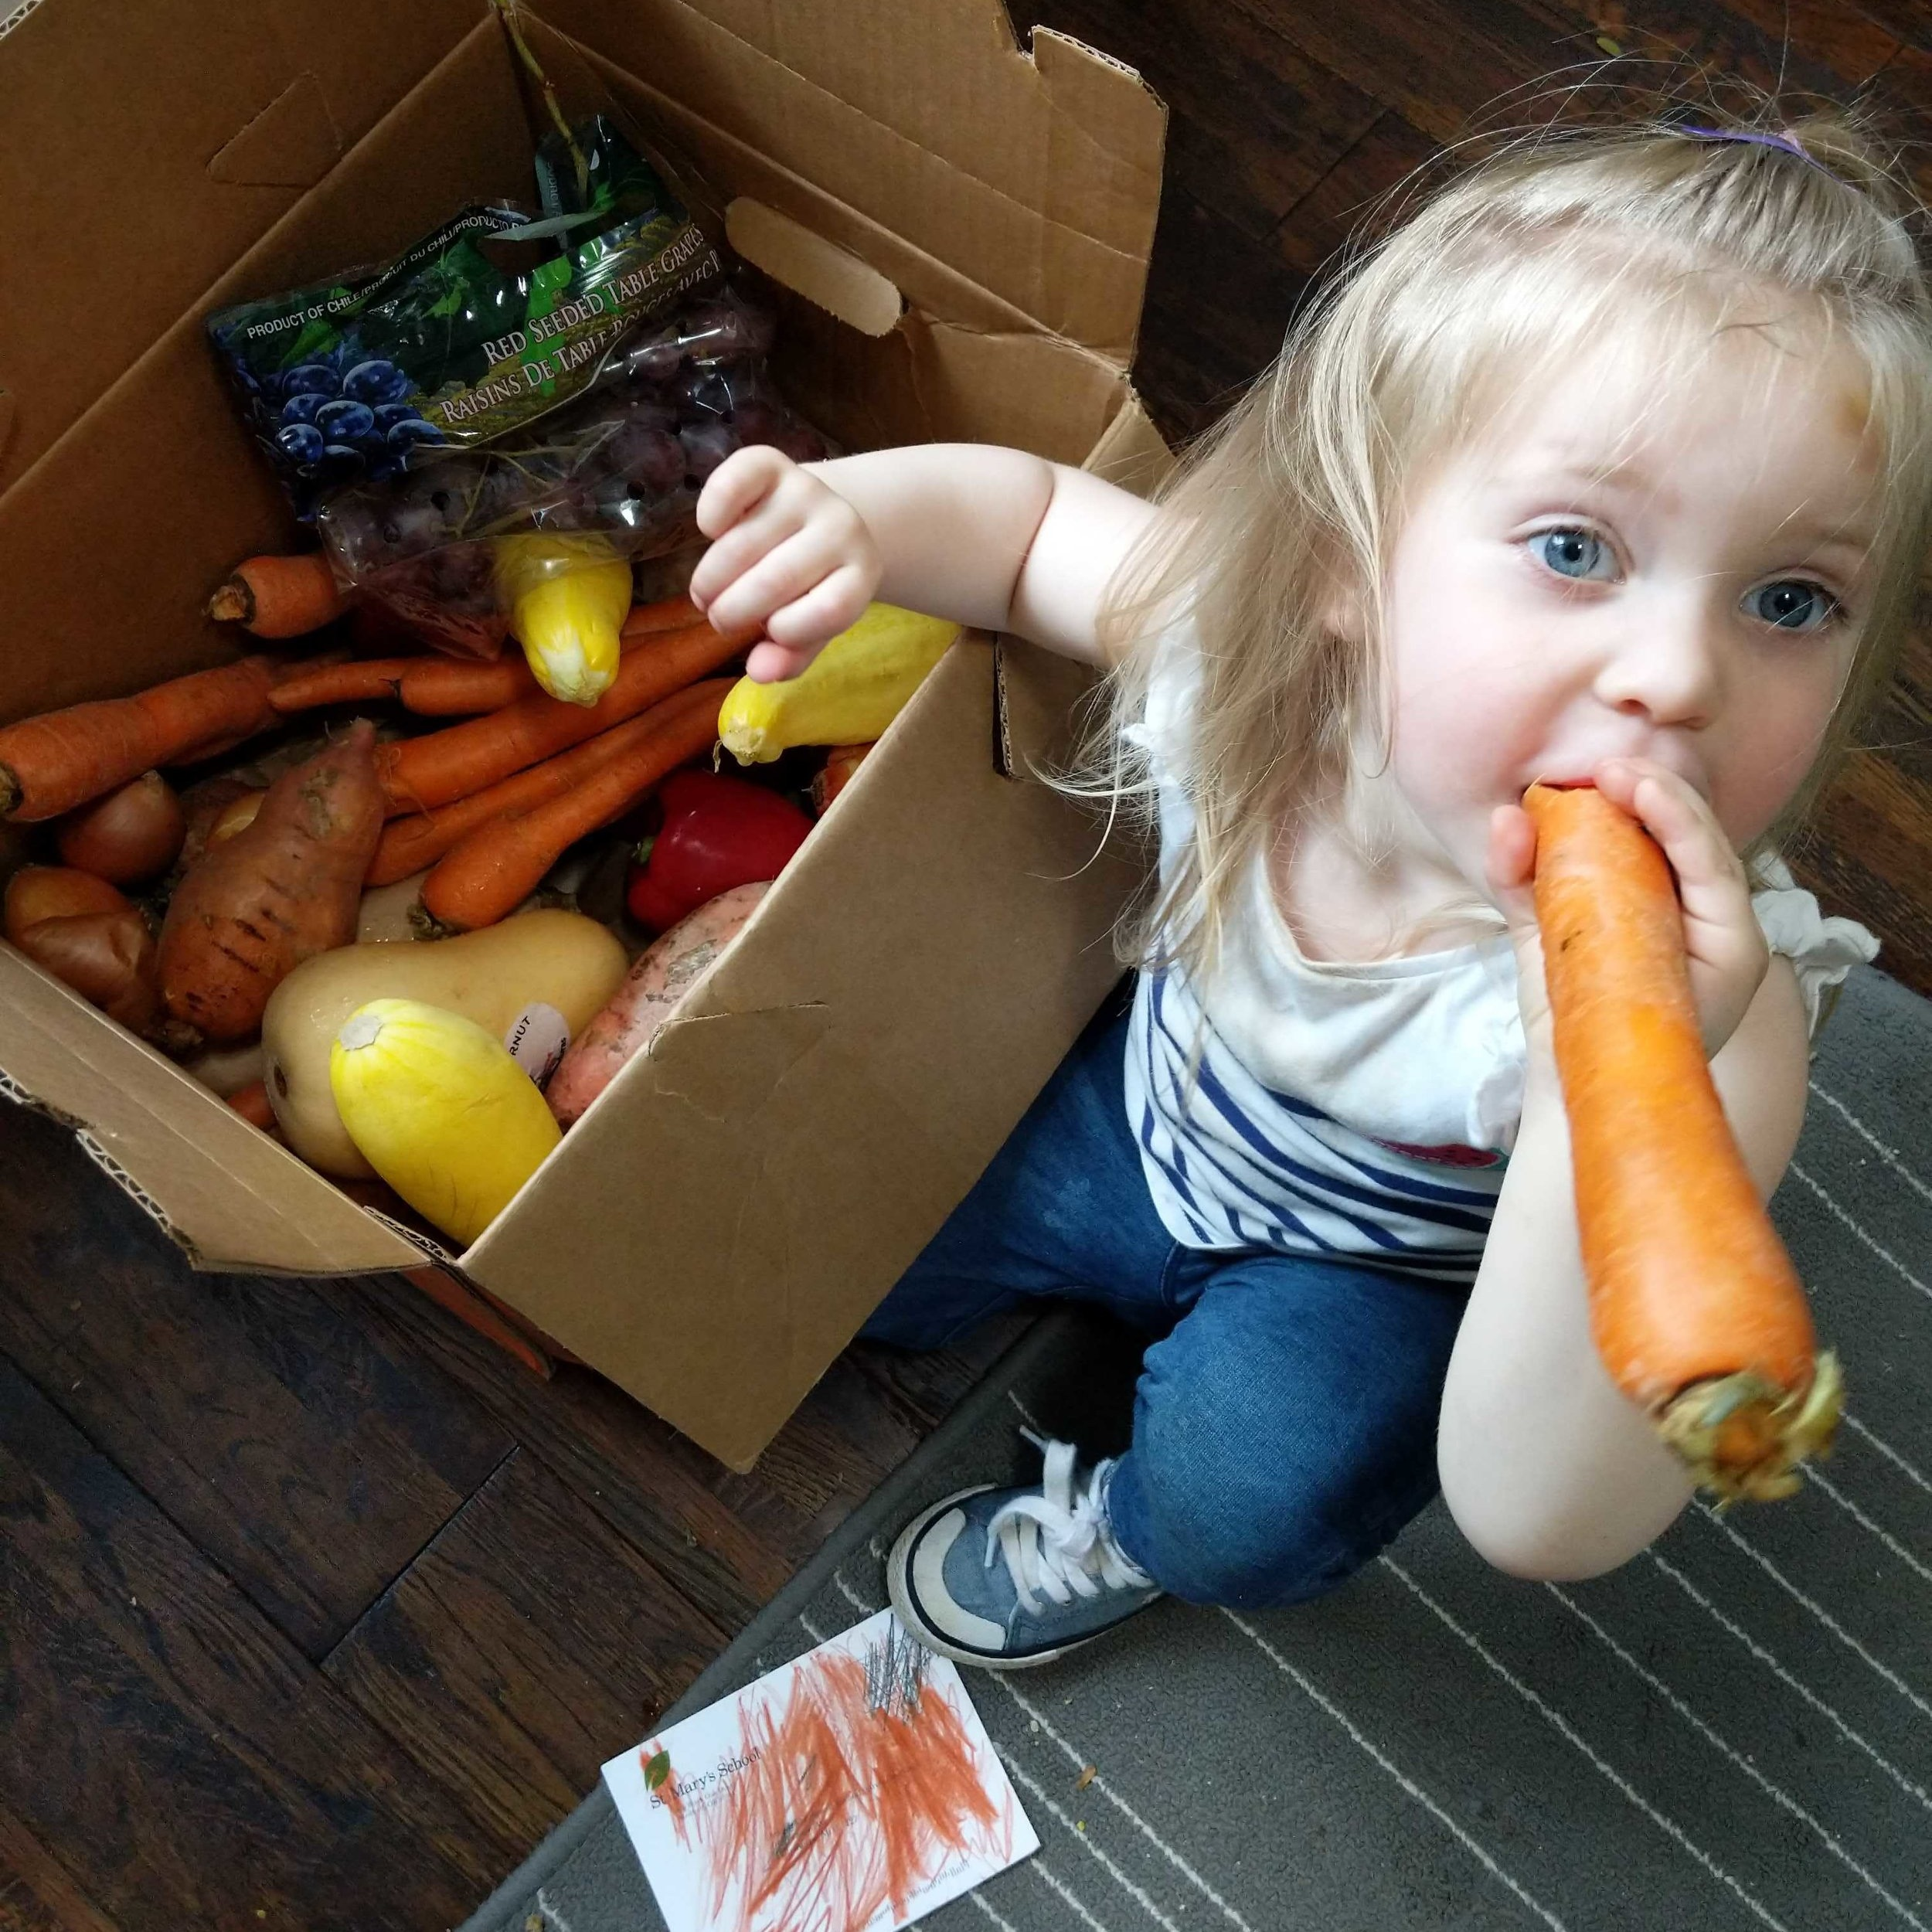 """- """"My daughter is really curious about food right now - so I'm starting early and showing her the importance of where her food comes from and eventually how it plays into the bigger food system. For now, whether that means tasting something at the farmers market or going through our Hungry Harvest delivery together, that sense of discovery is still the same.""""Ariana, Customer Experience and Training Manager"""